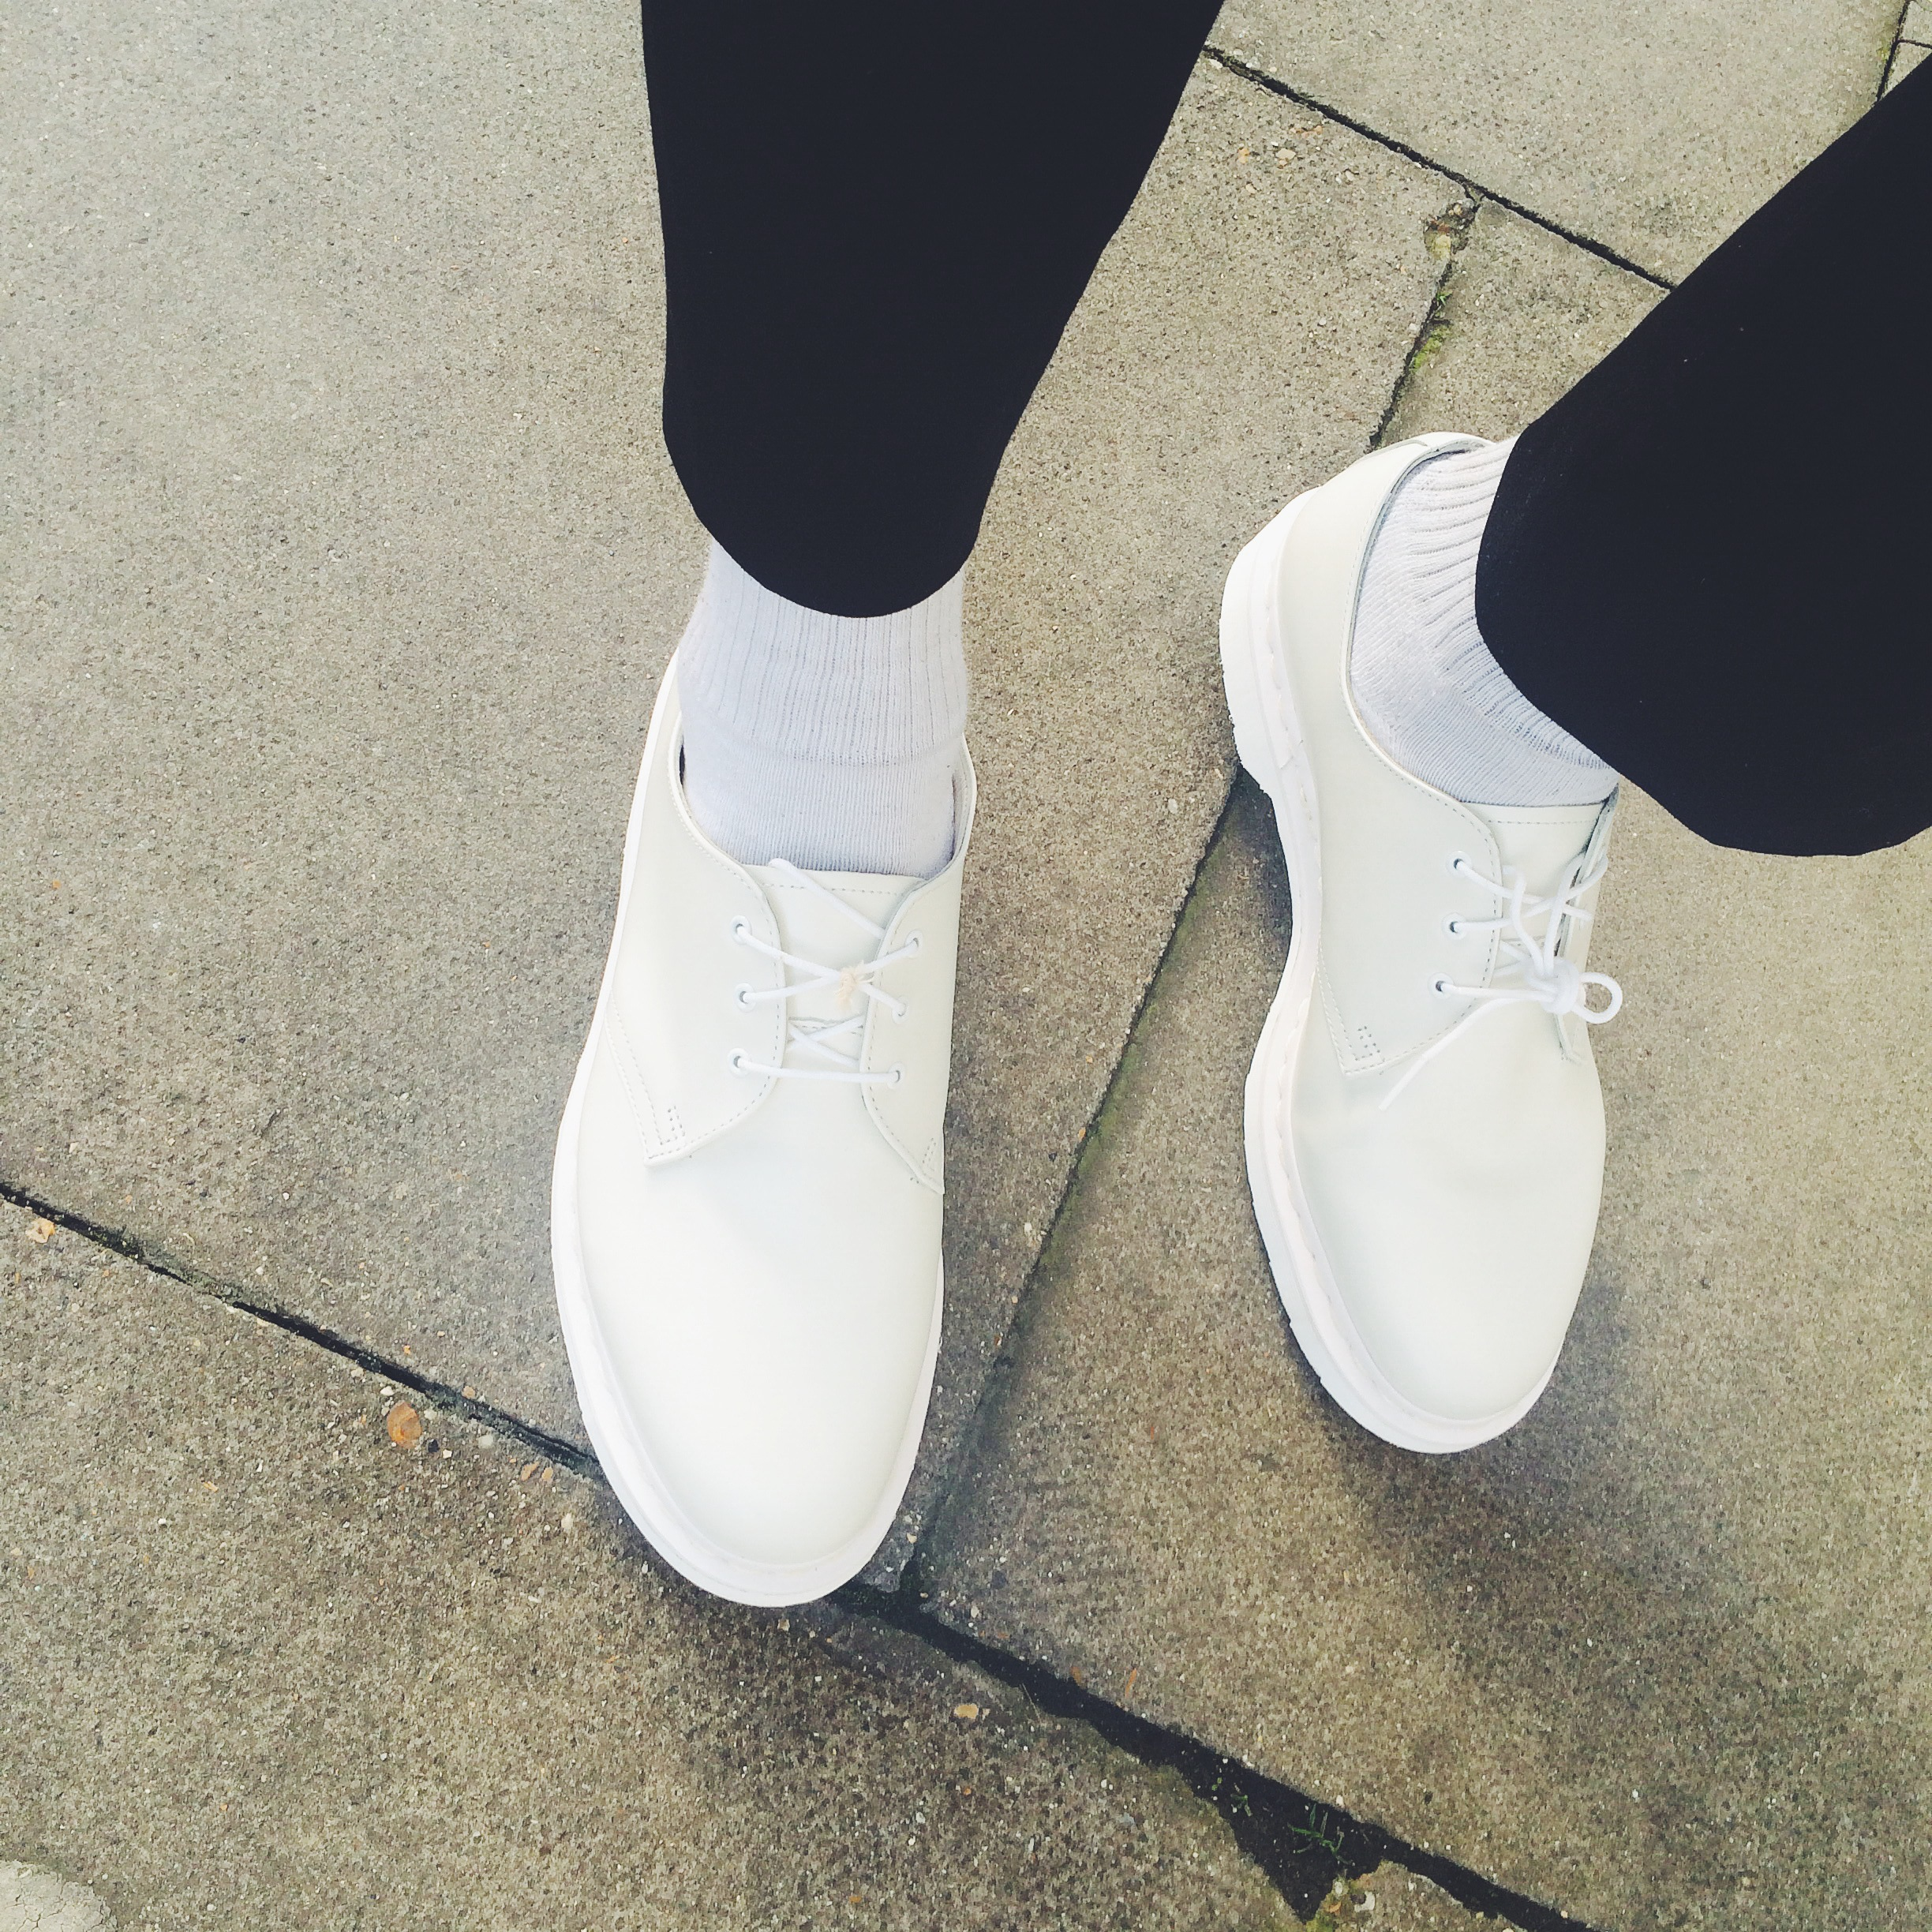 Dr Martens All-White 1461 Spring/Summer 2015 Mono Shoes